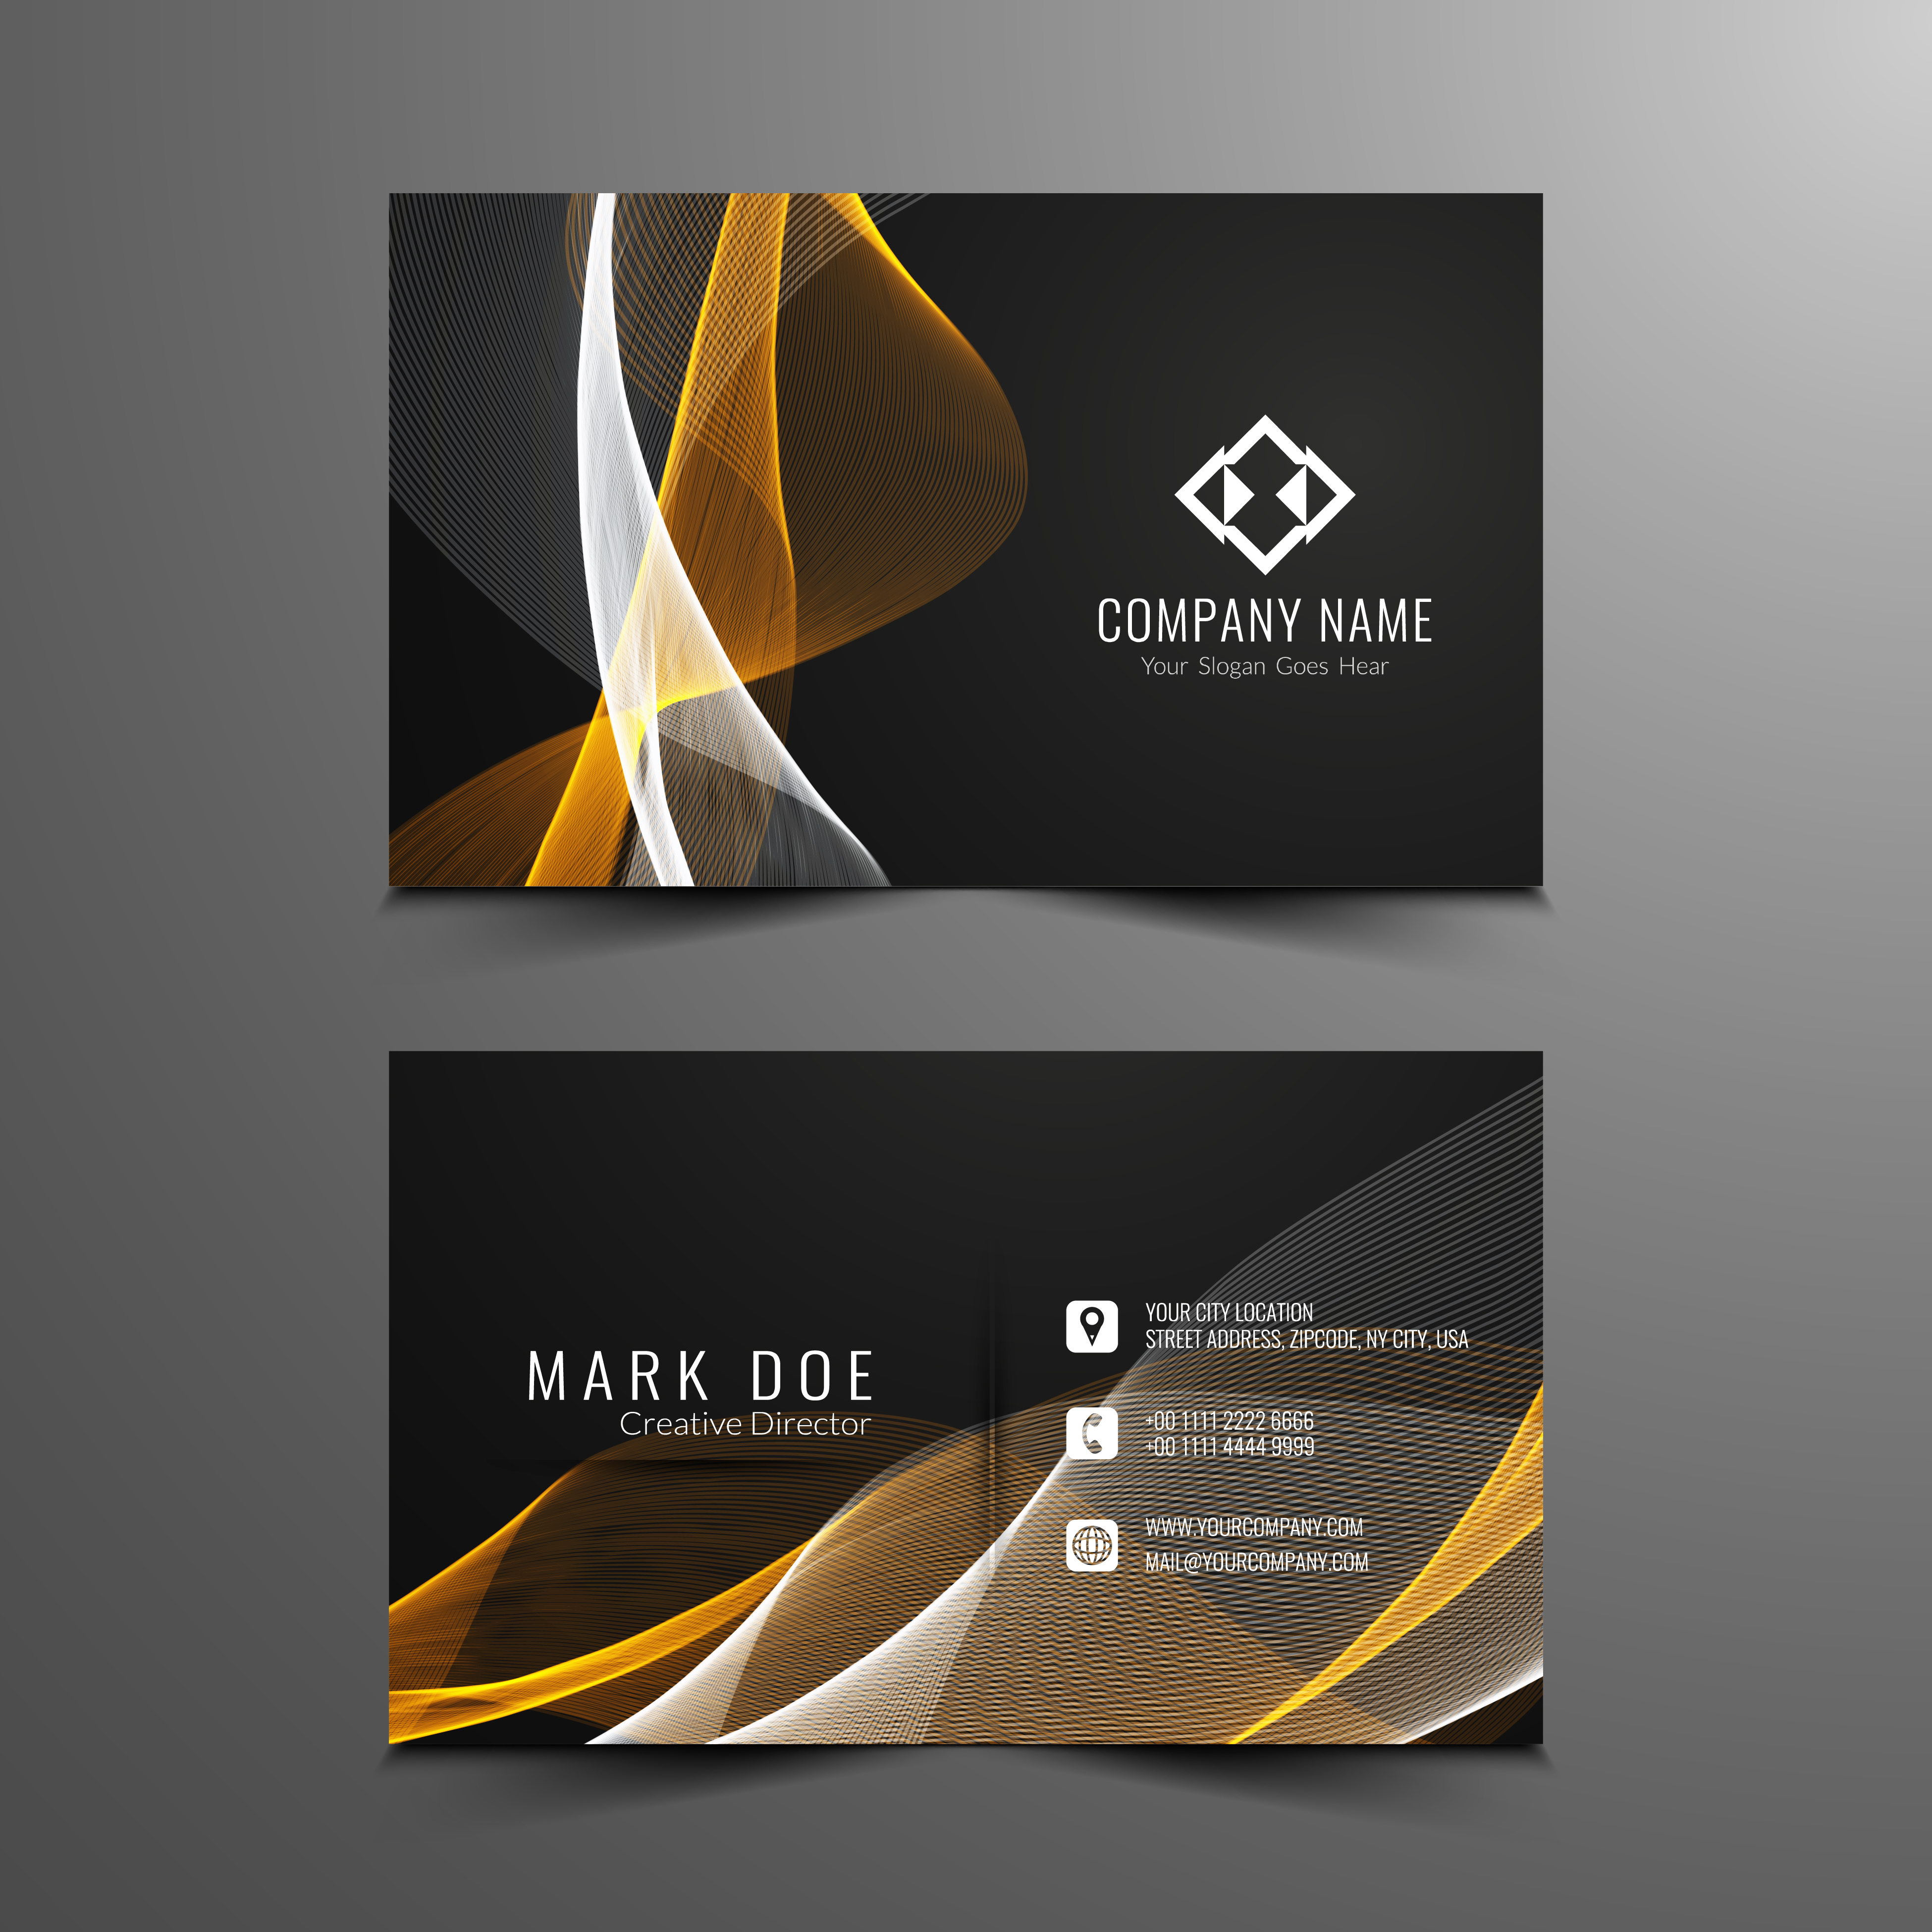 Abstract Wavy Business Card Design 254686